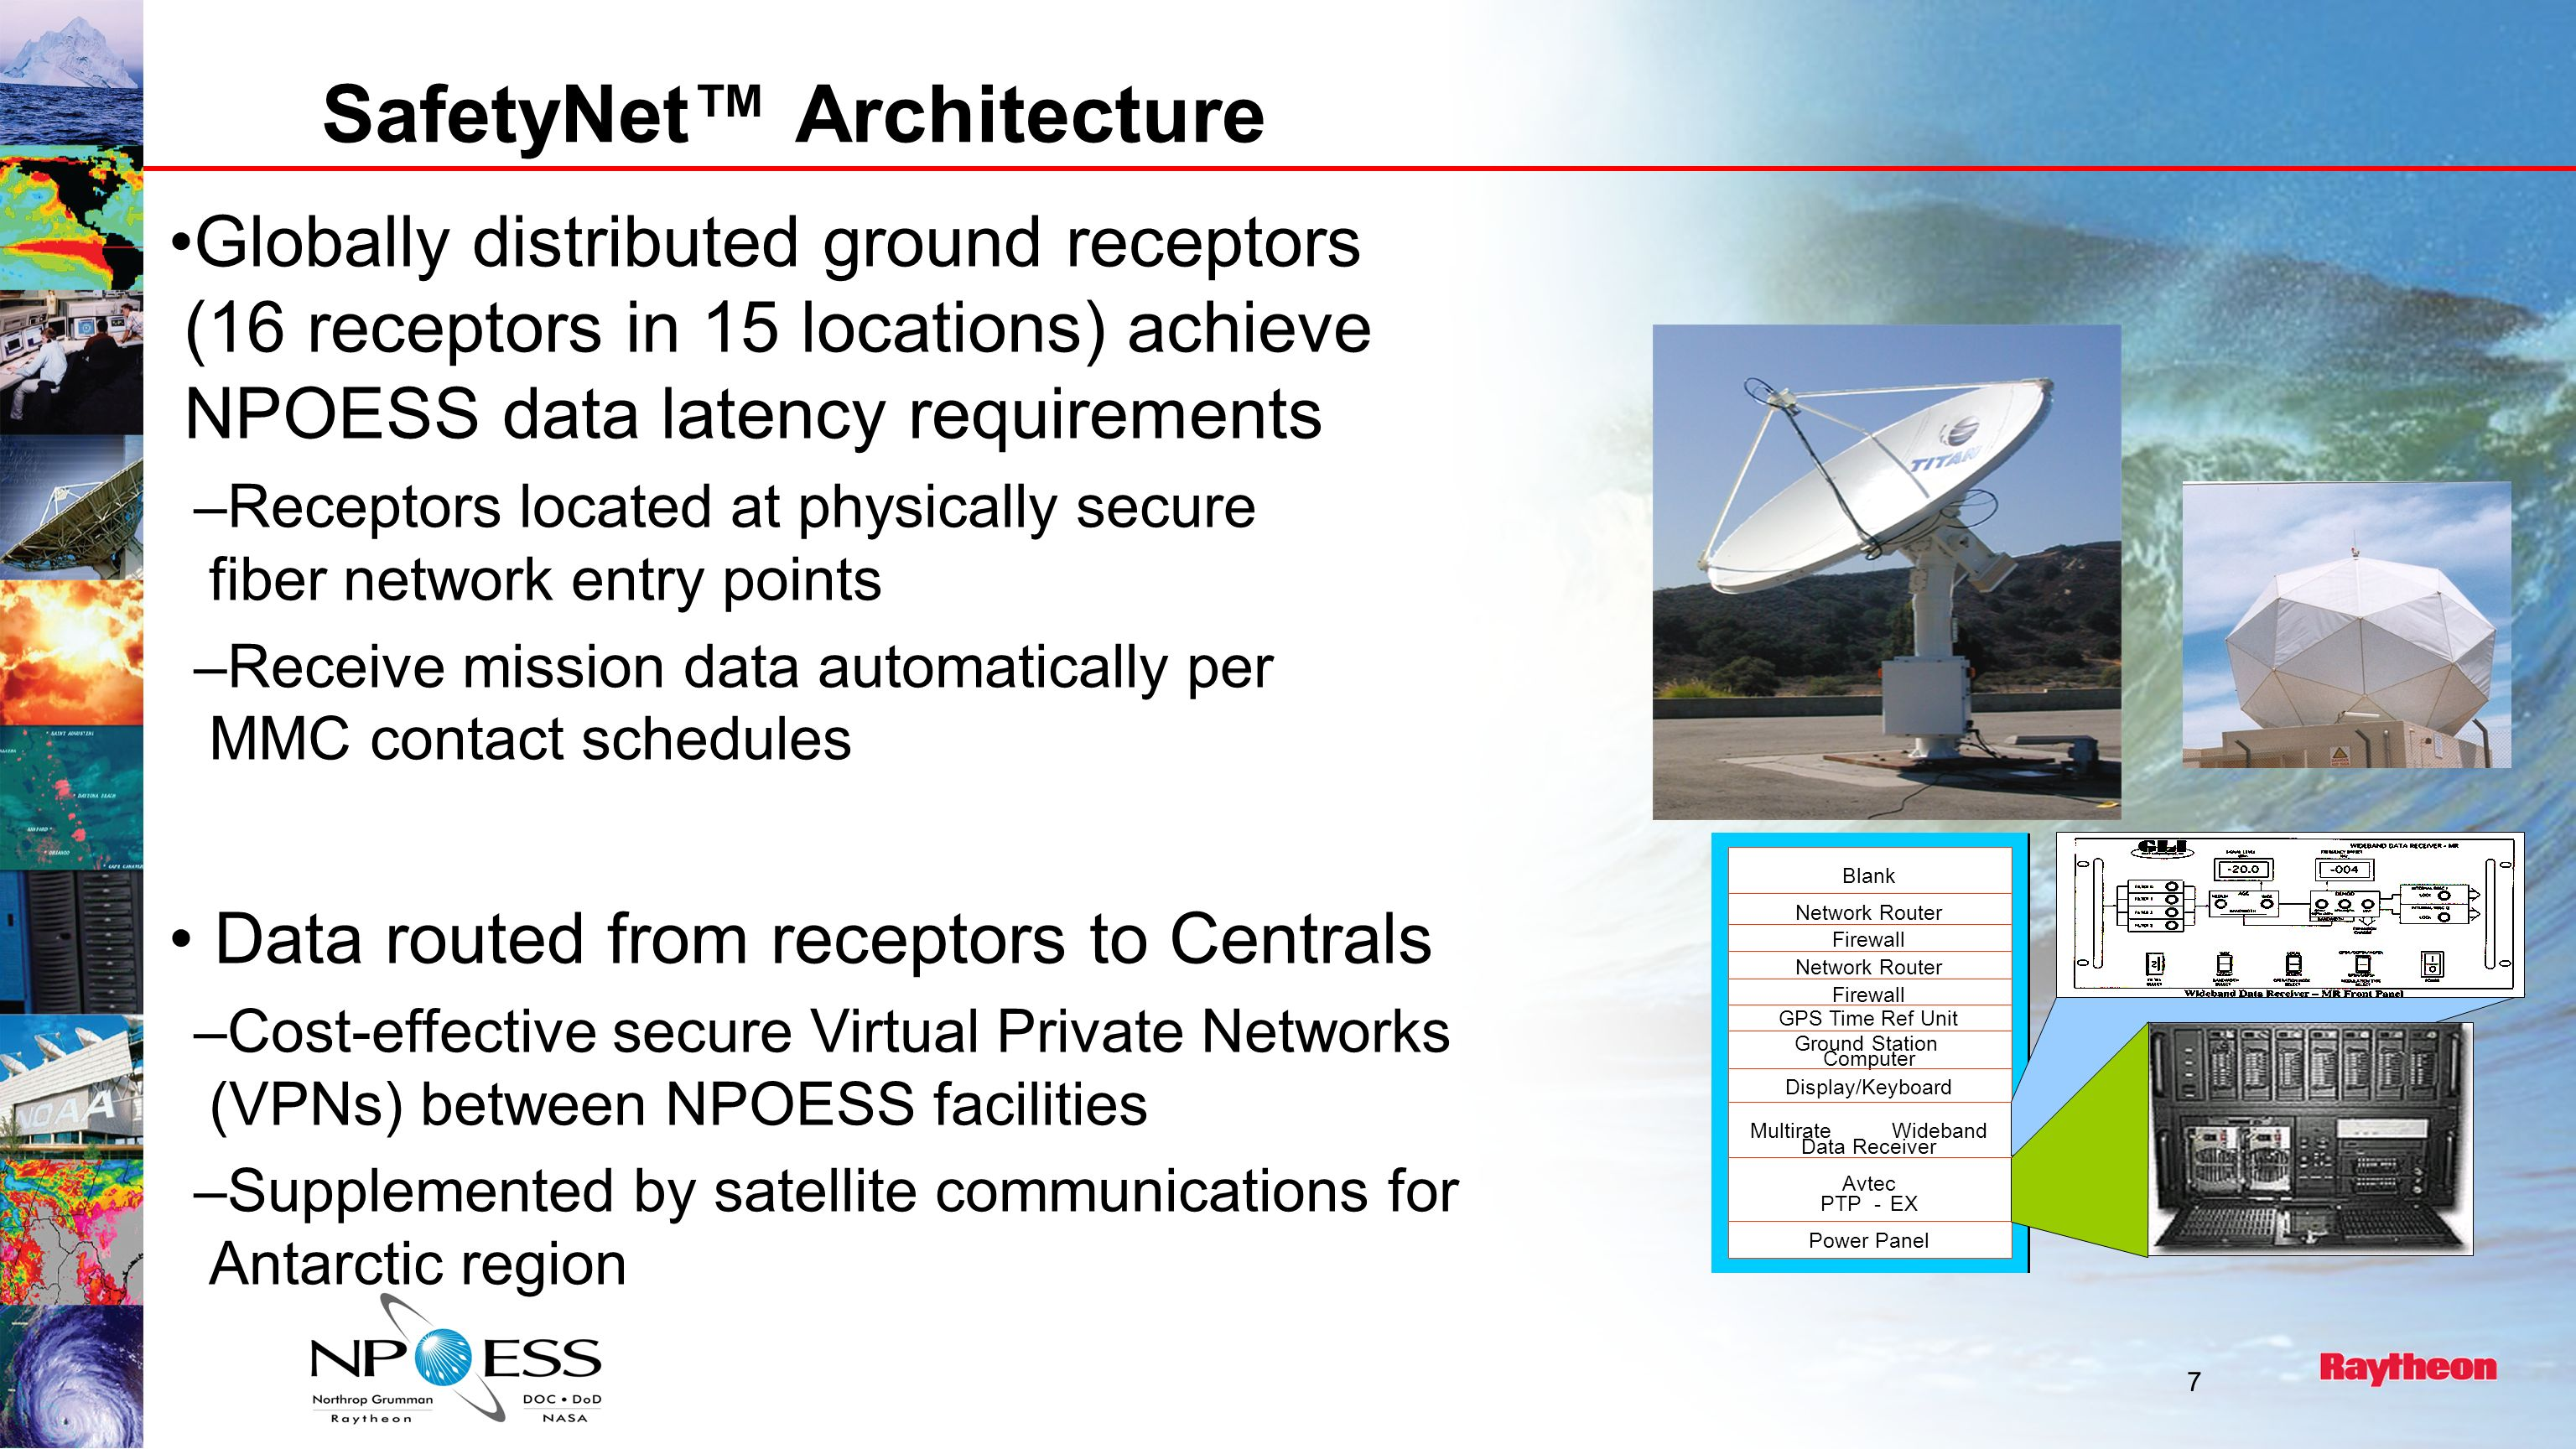 7 SafetyNet Architecture Blank Network Router Firewall Network Router Firewall GPS Time Ref Unit Ground Station Computer Display/Keyboard MultirateWideband Data Receiver Power Panel Avtec PTP-EX Globally distributed ground receptors (16 receptors in 15 locations) achieve NPOESS data latency requirements –Receptors located at physically secure fiber network entry points –Receive mission data automatically per MMC contact schedules Data routed from receptors to Centrals –Cost-effective secure Virtual Private Networks (VPNs) between NPOESS facilities –Supplemented by satellite communications for Antarctic region